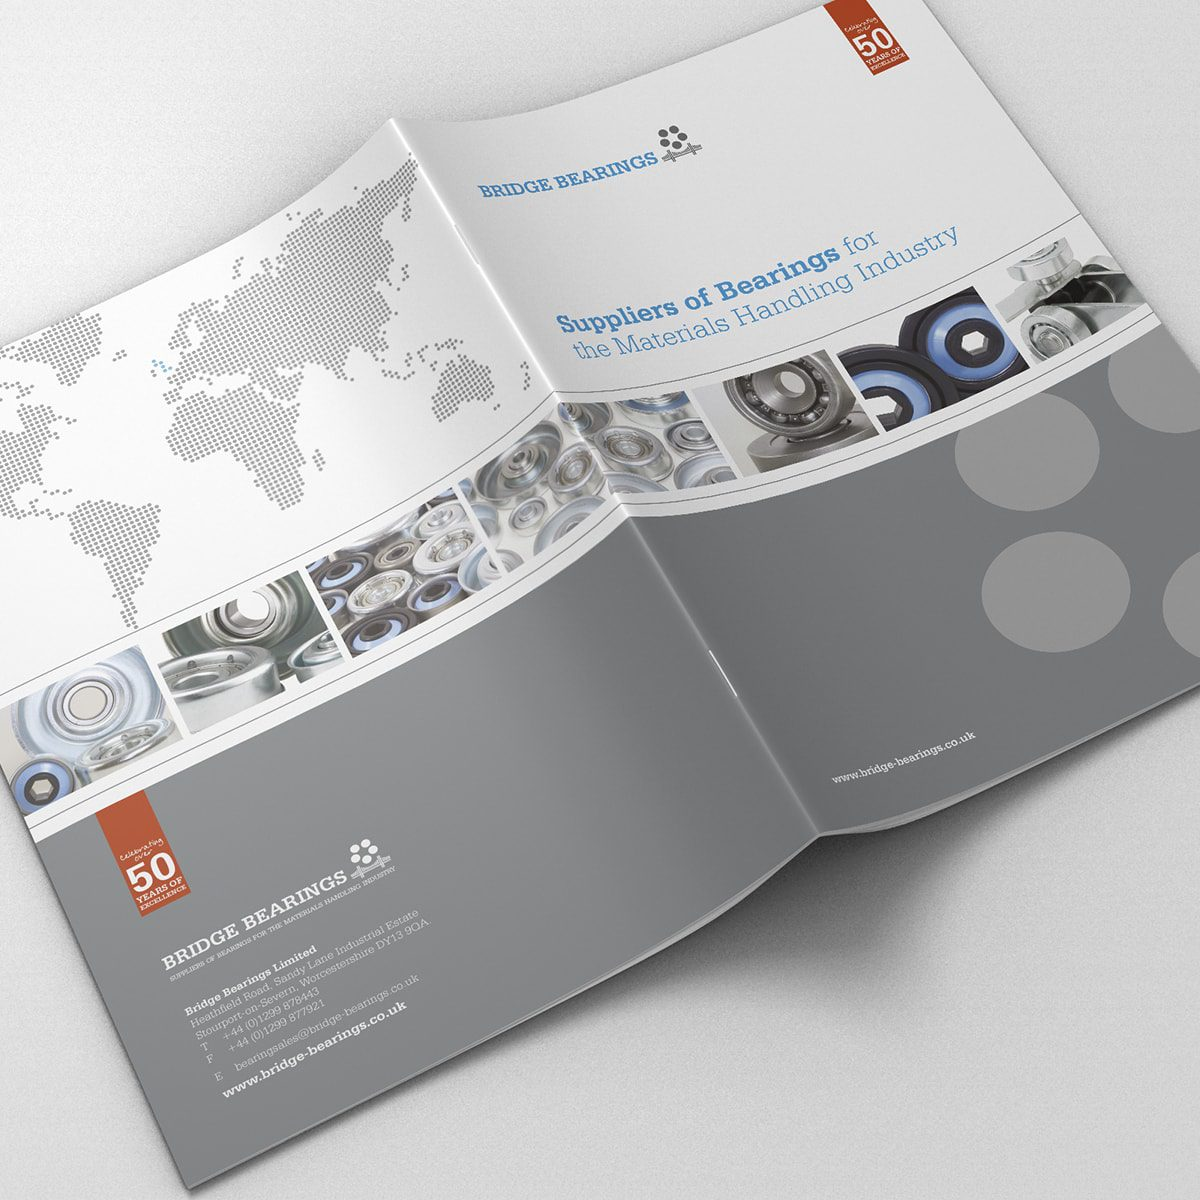 Bridge Bearings Brochure | Portfolio | Blackberry Design